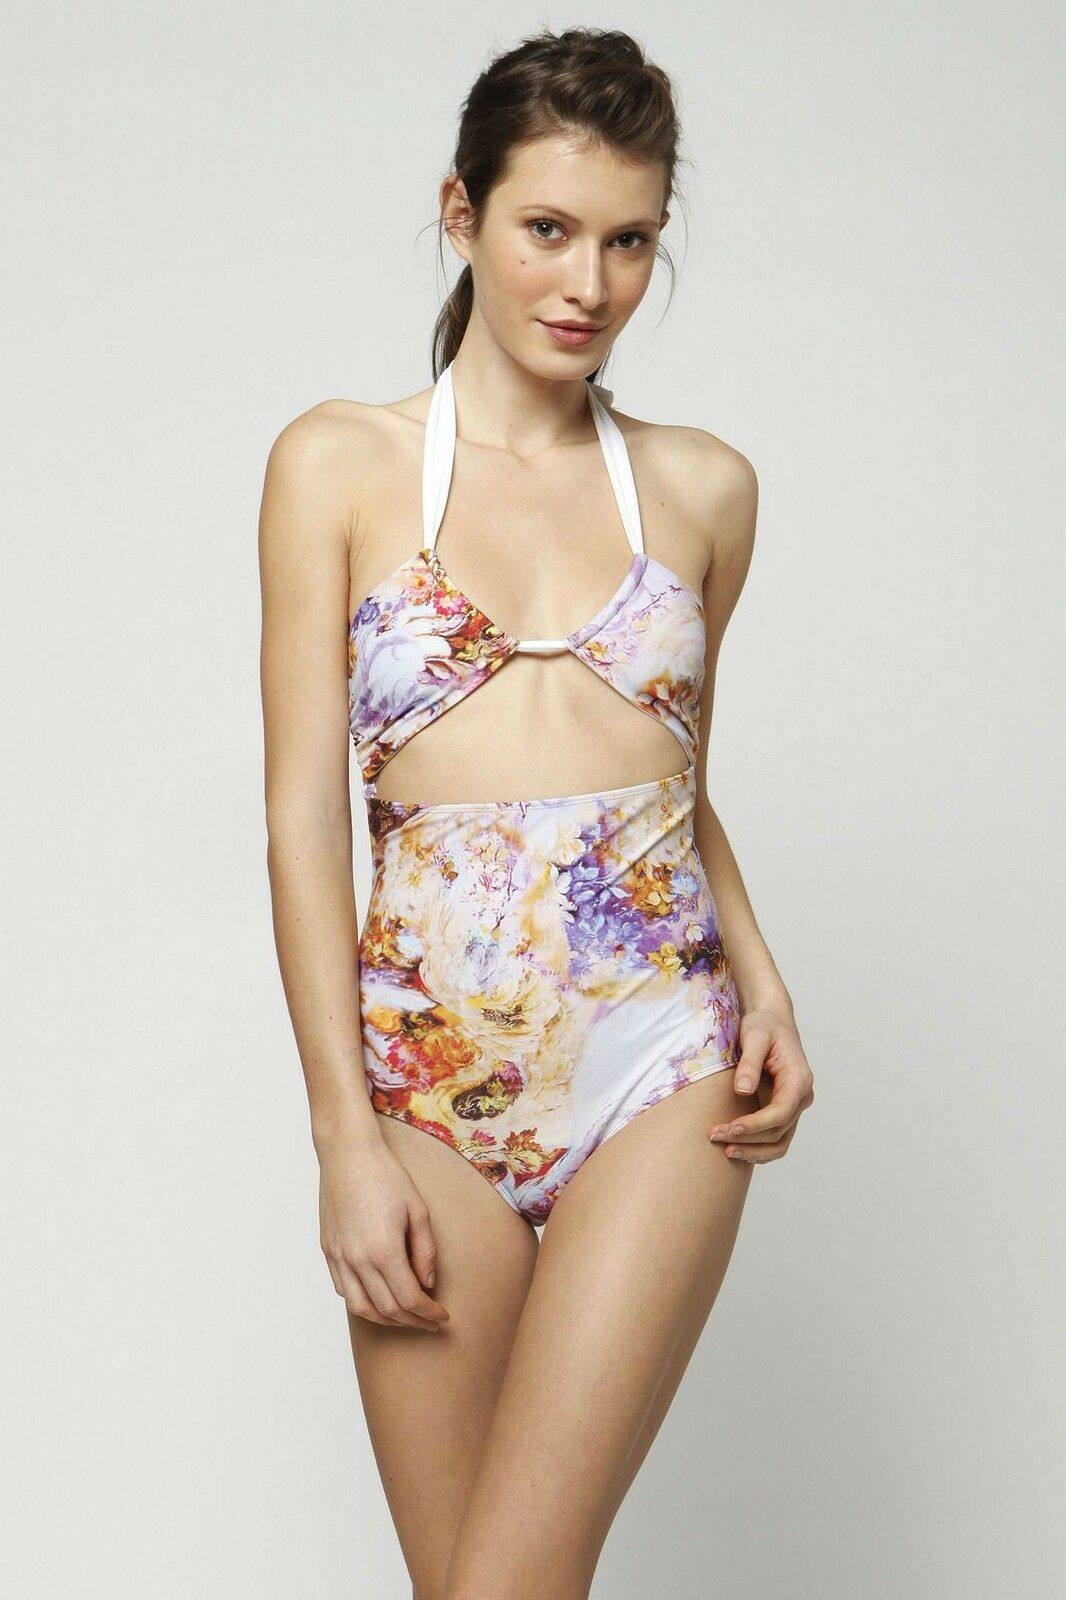 Anthropologie One-Piece Swimsuit Maillot pinkrito Swim By Amore & Sorvete 8 10 L